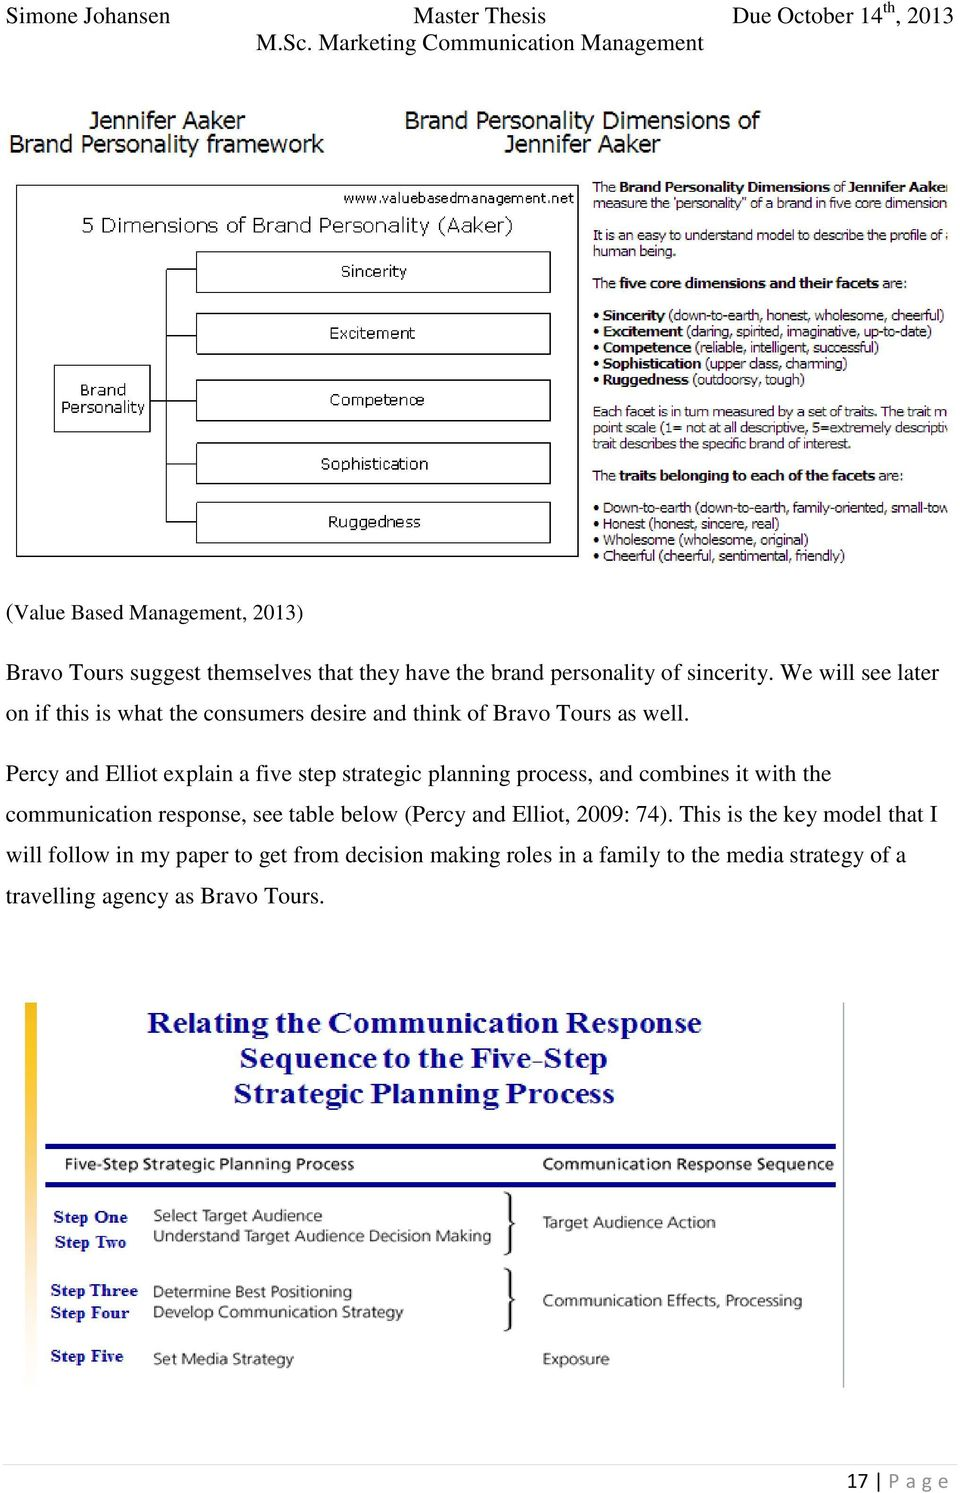 Percy and Elliot explain a five step strategic planning process, and combines it with the communication response, see table below